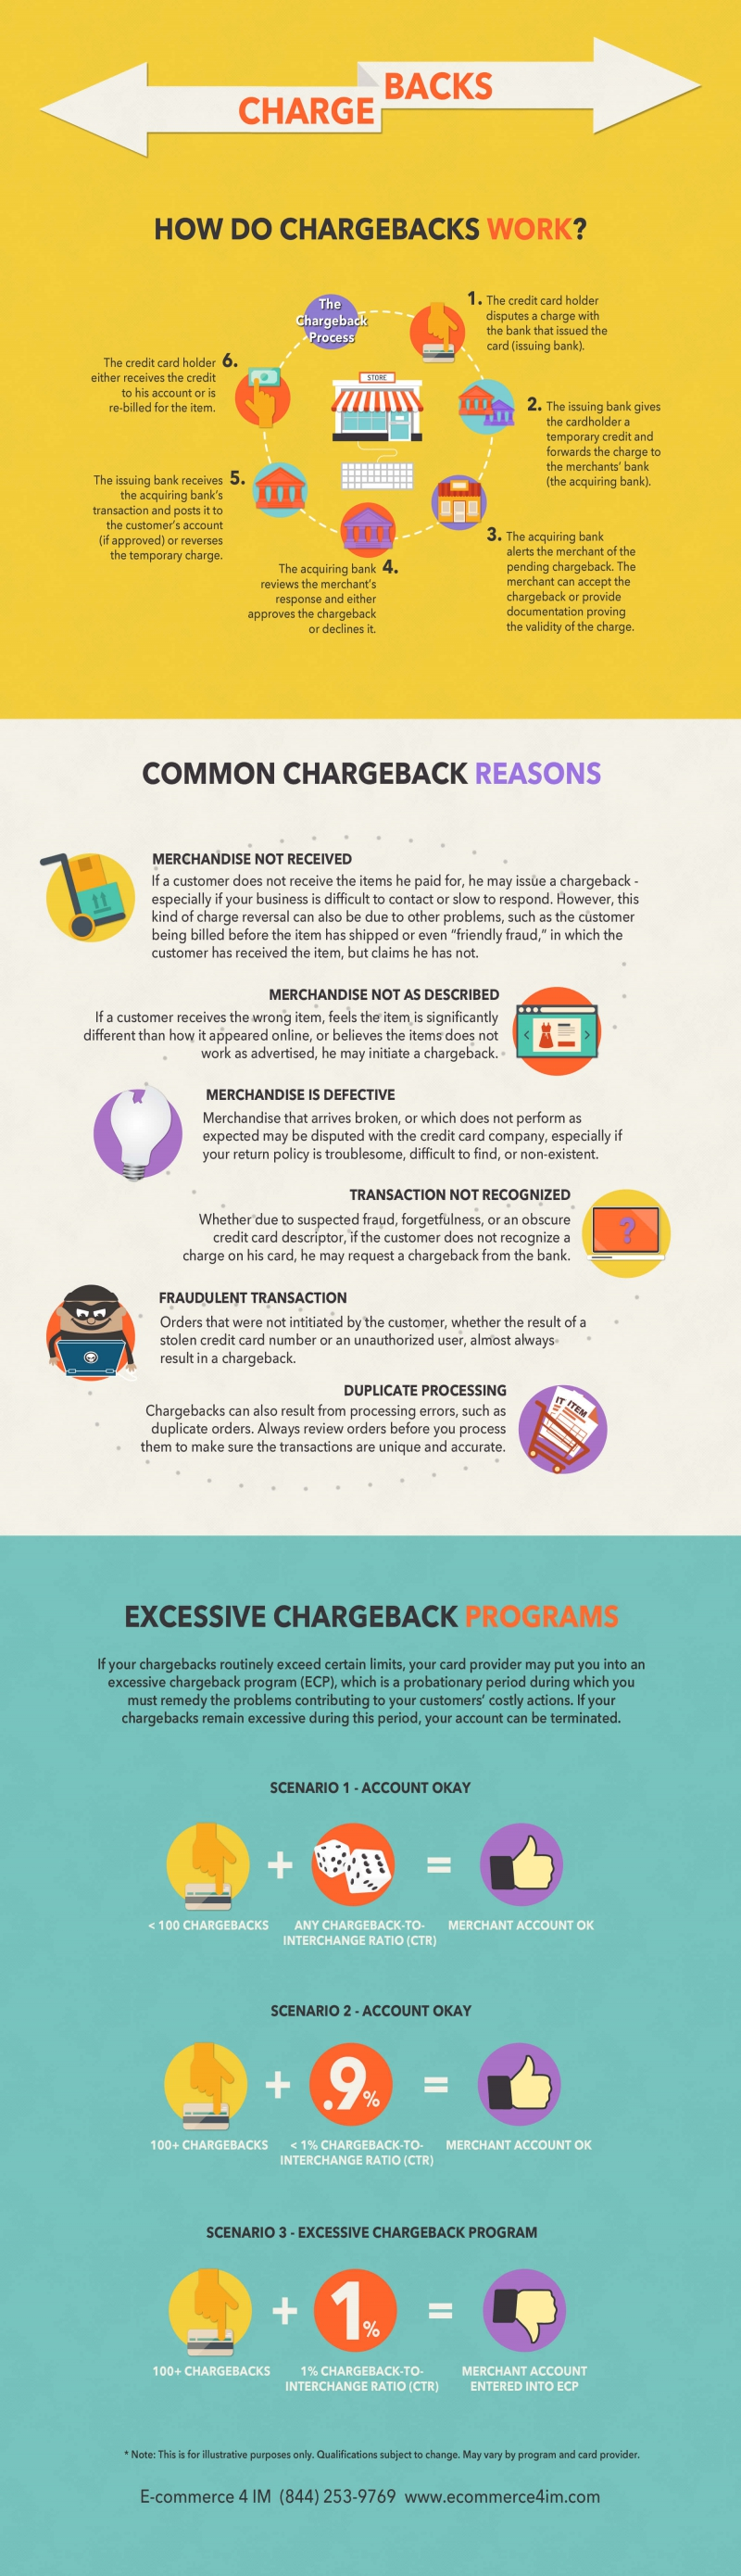 how-chargebacks-work-800px